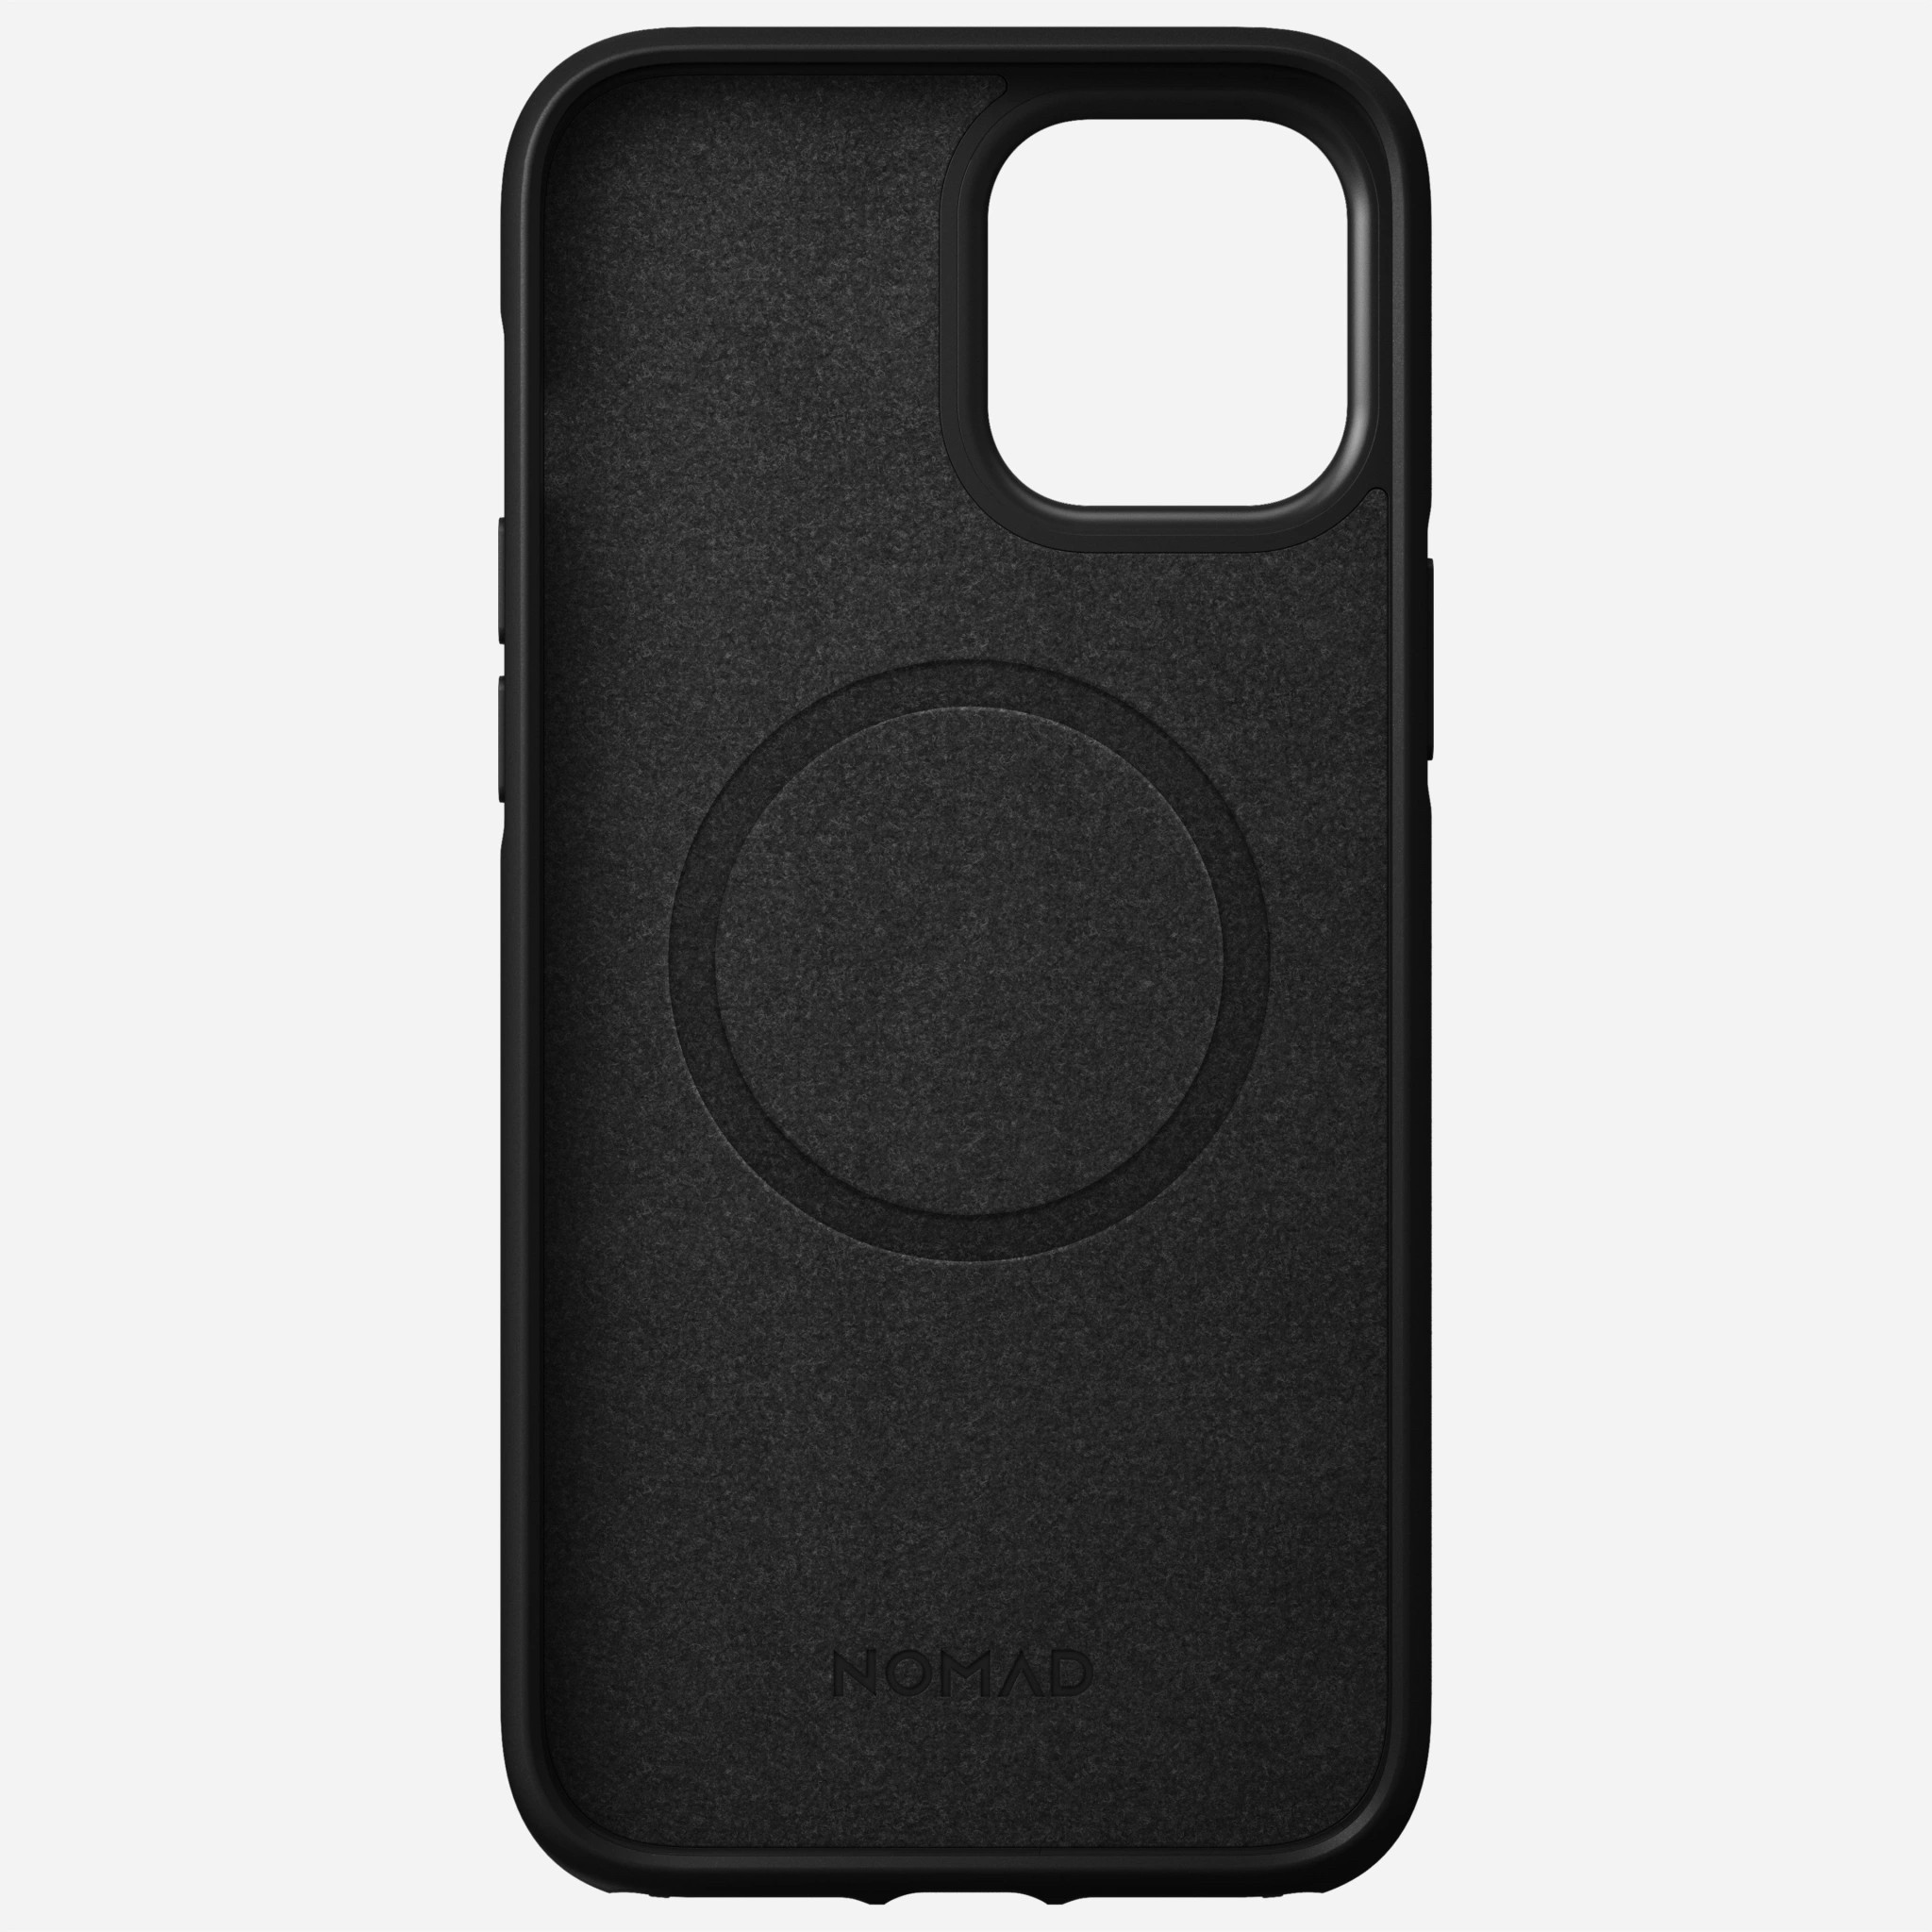 Nomad - MagSafe Leather Case - iPhone 12 Pro Max - Black, NM01967385